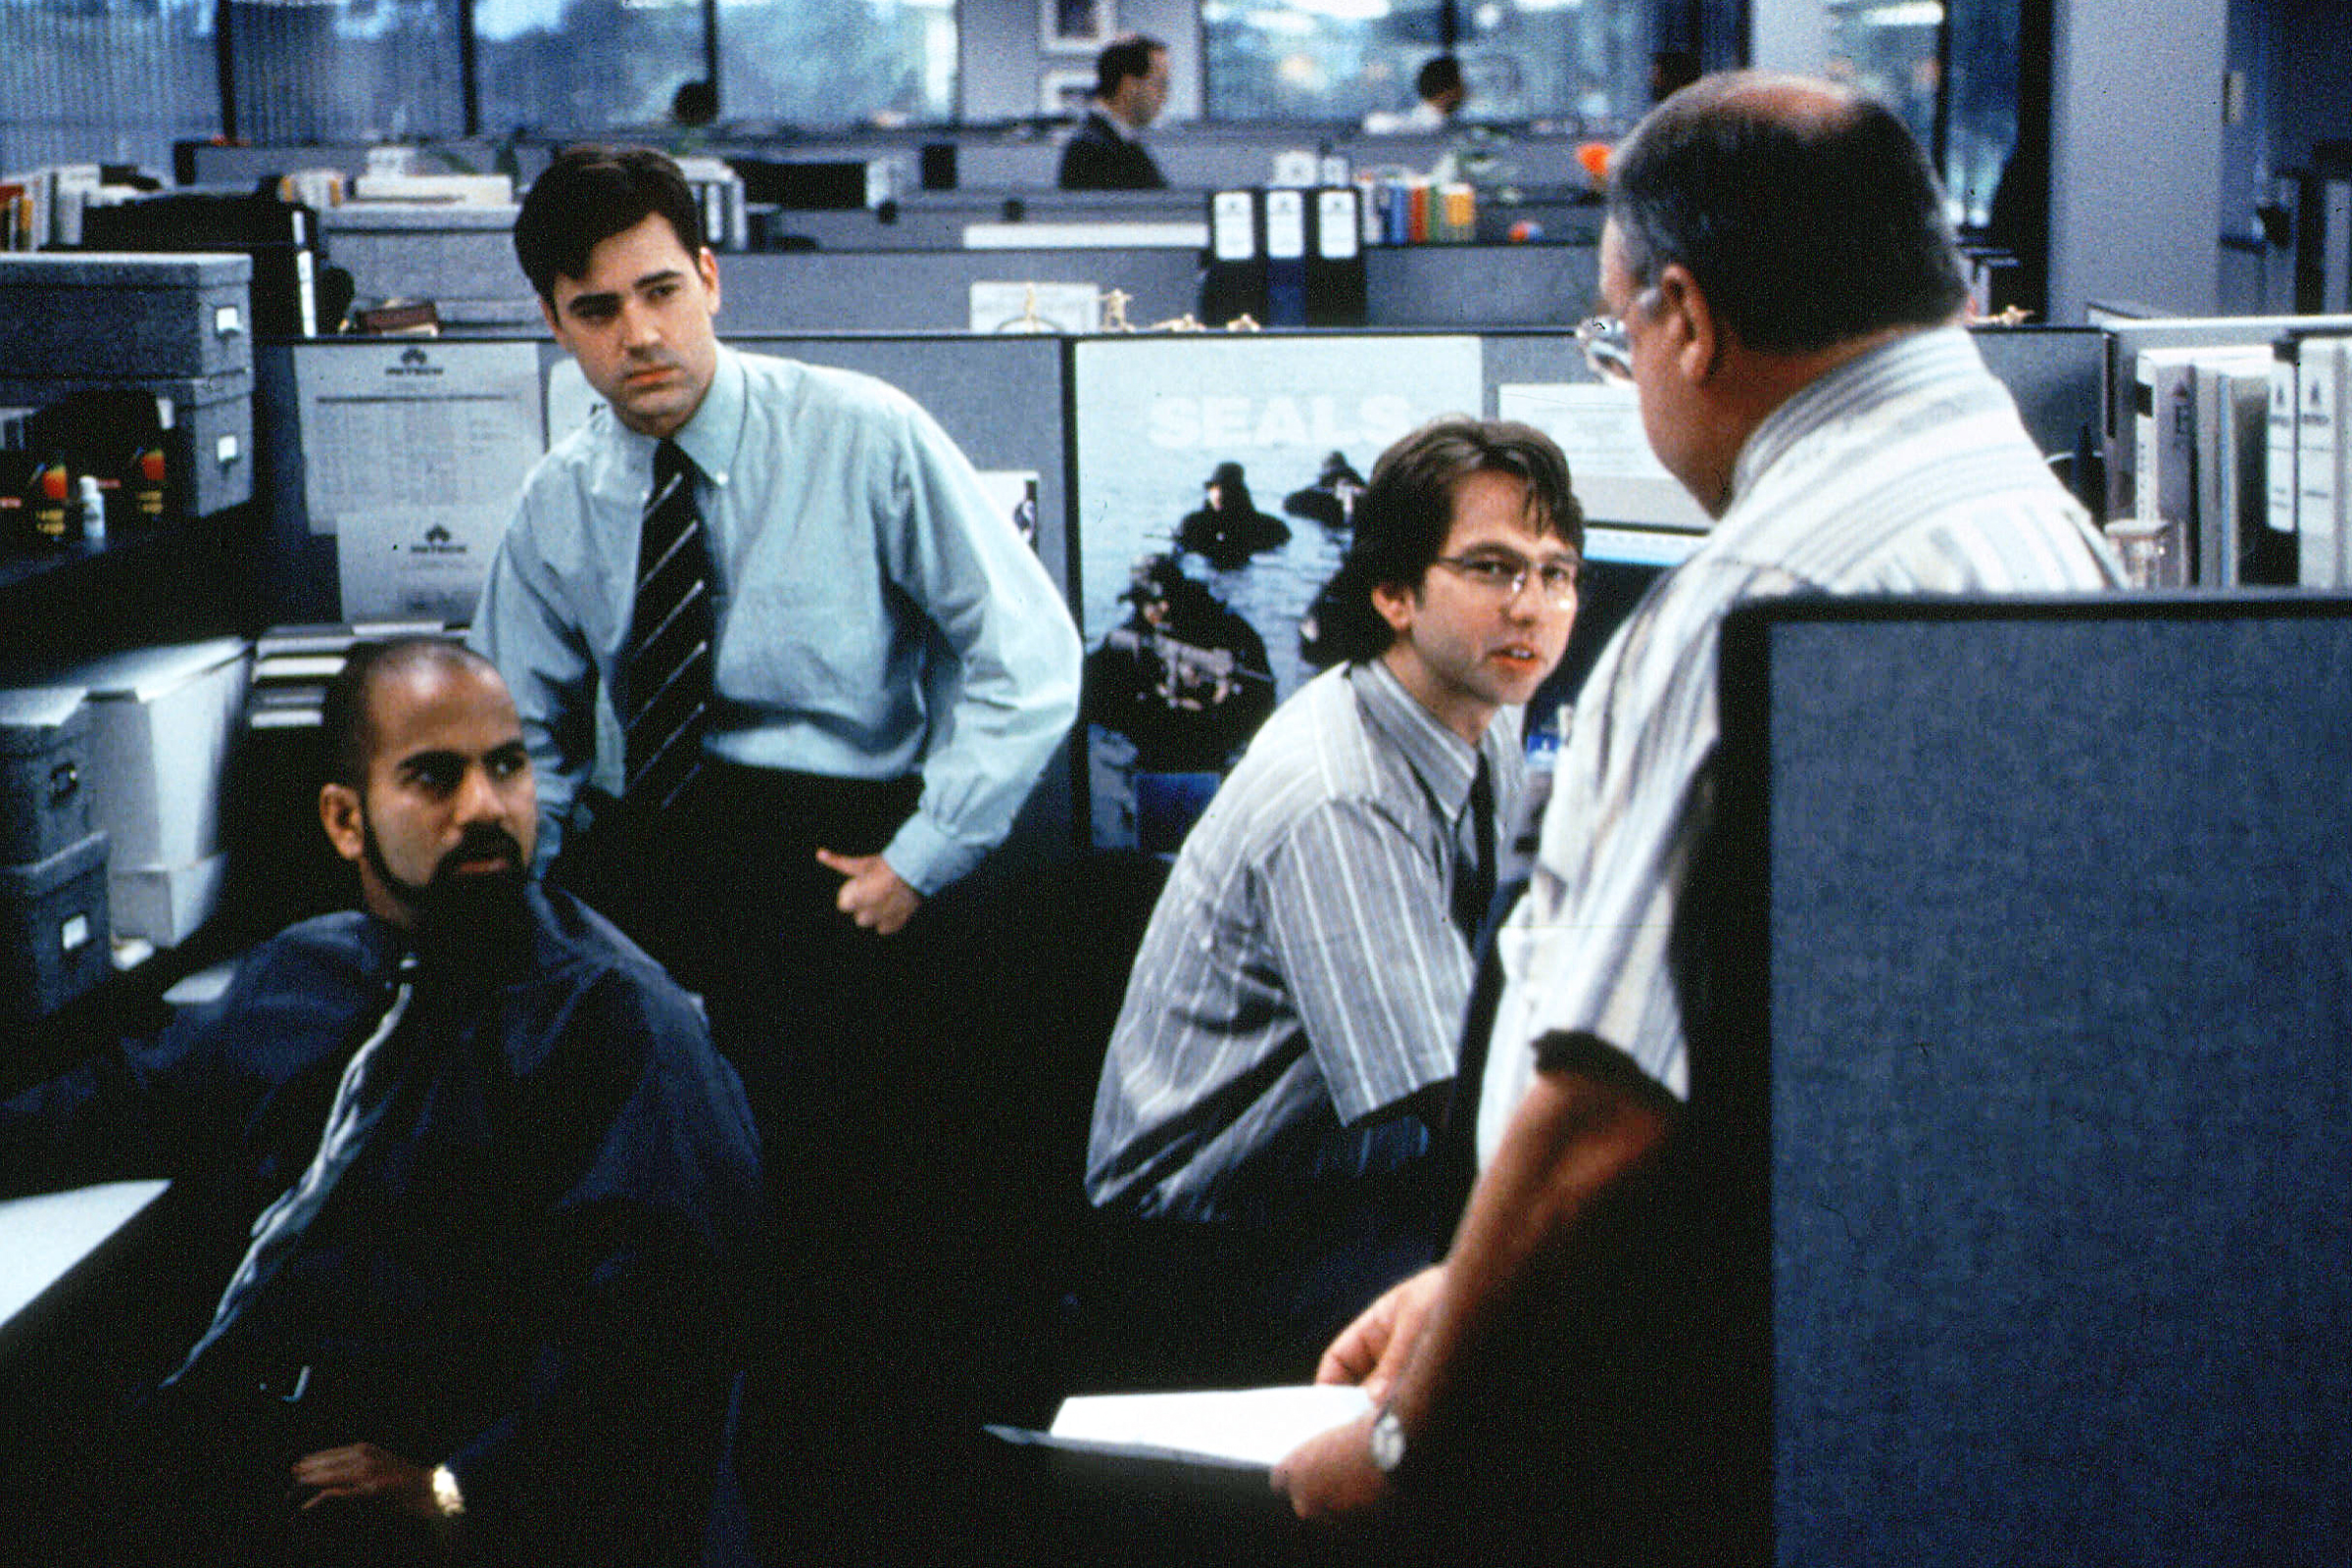 Pics Of Office Space Milton Ajay Naidu Ron Livingston David Herman And Richard Riehle In office Space Huffpost Office Space Oral History Ofaces Red Staplers Tps Reports